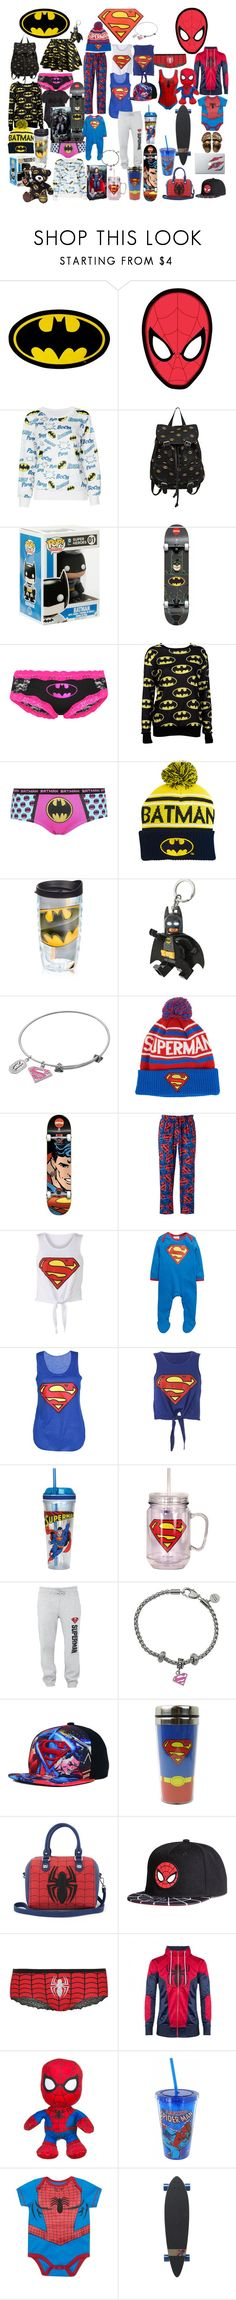 """Untitled #21"" by storyofabeautyblogger ❤ liked on Polyvore featuring Hot Topic, DC Comics, George, M:UK, Old Navy, Tervis, Marvel Comics, Disney, Marvel and Santa Cruz Skateboards"